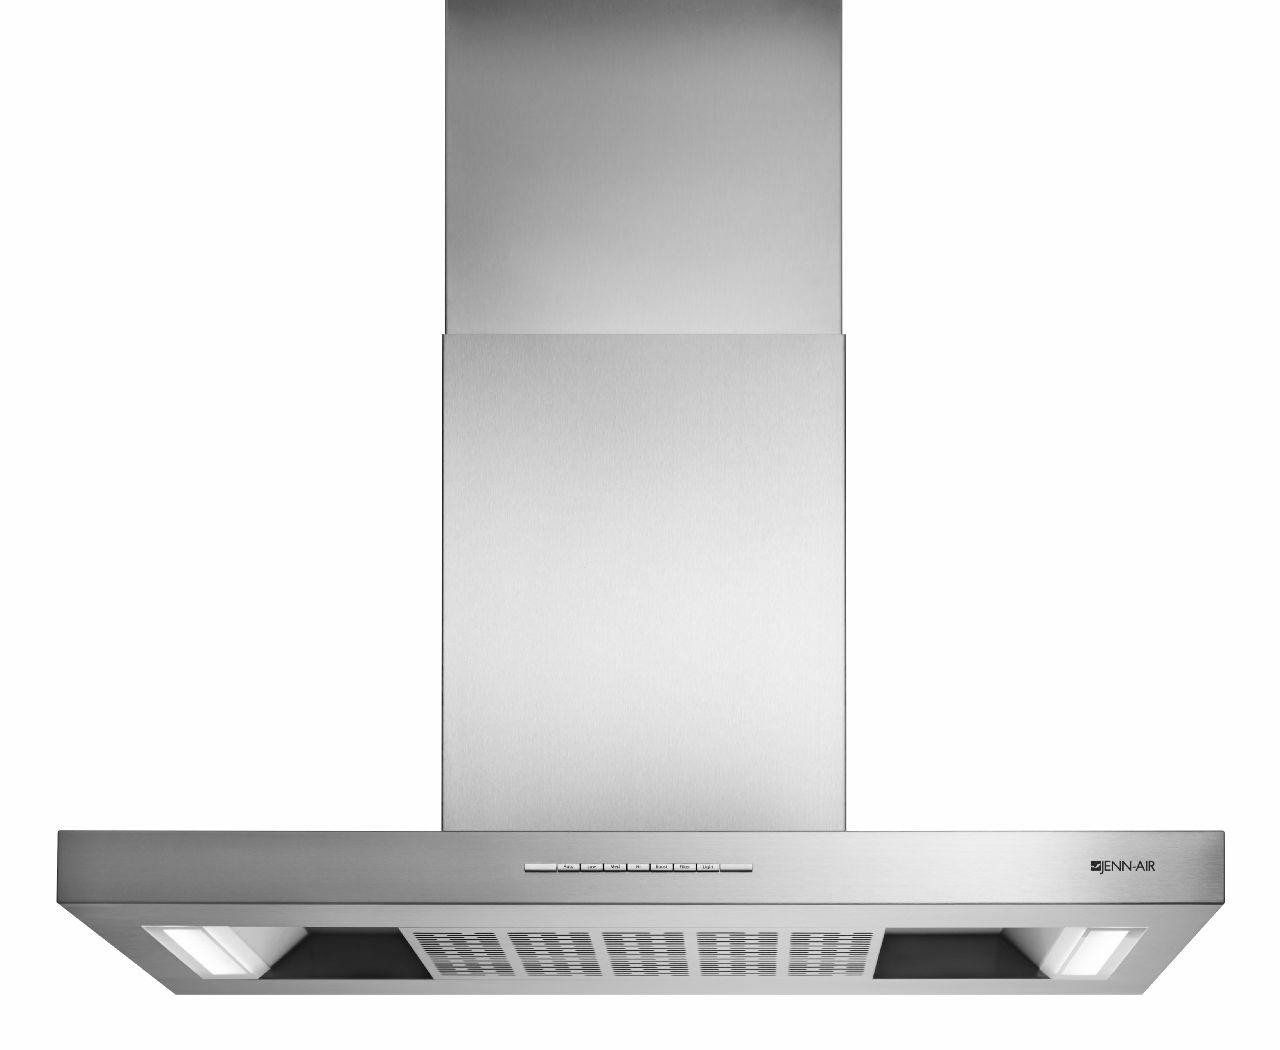 Jennair Jxw8736ds 36 Inch Wall Mount Range Hood With 4 Speeds 600 Cfm Blower Push Button Led Task Lighting Dishwasher Safe Metal Filter Auto Sense Boost Function Quiet Operation Sleep Mode Recirculating Installation Option